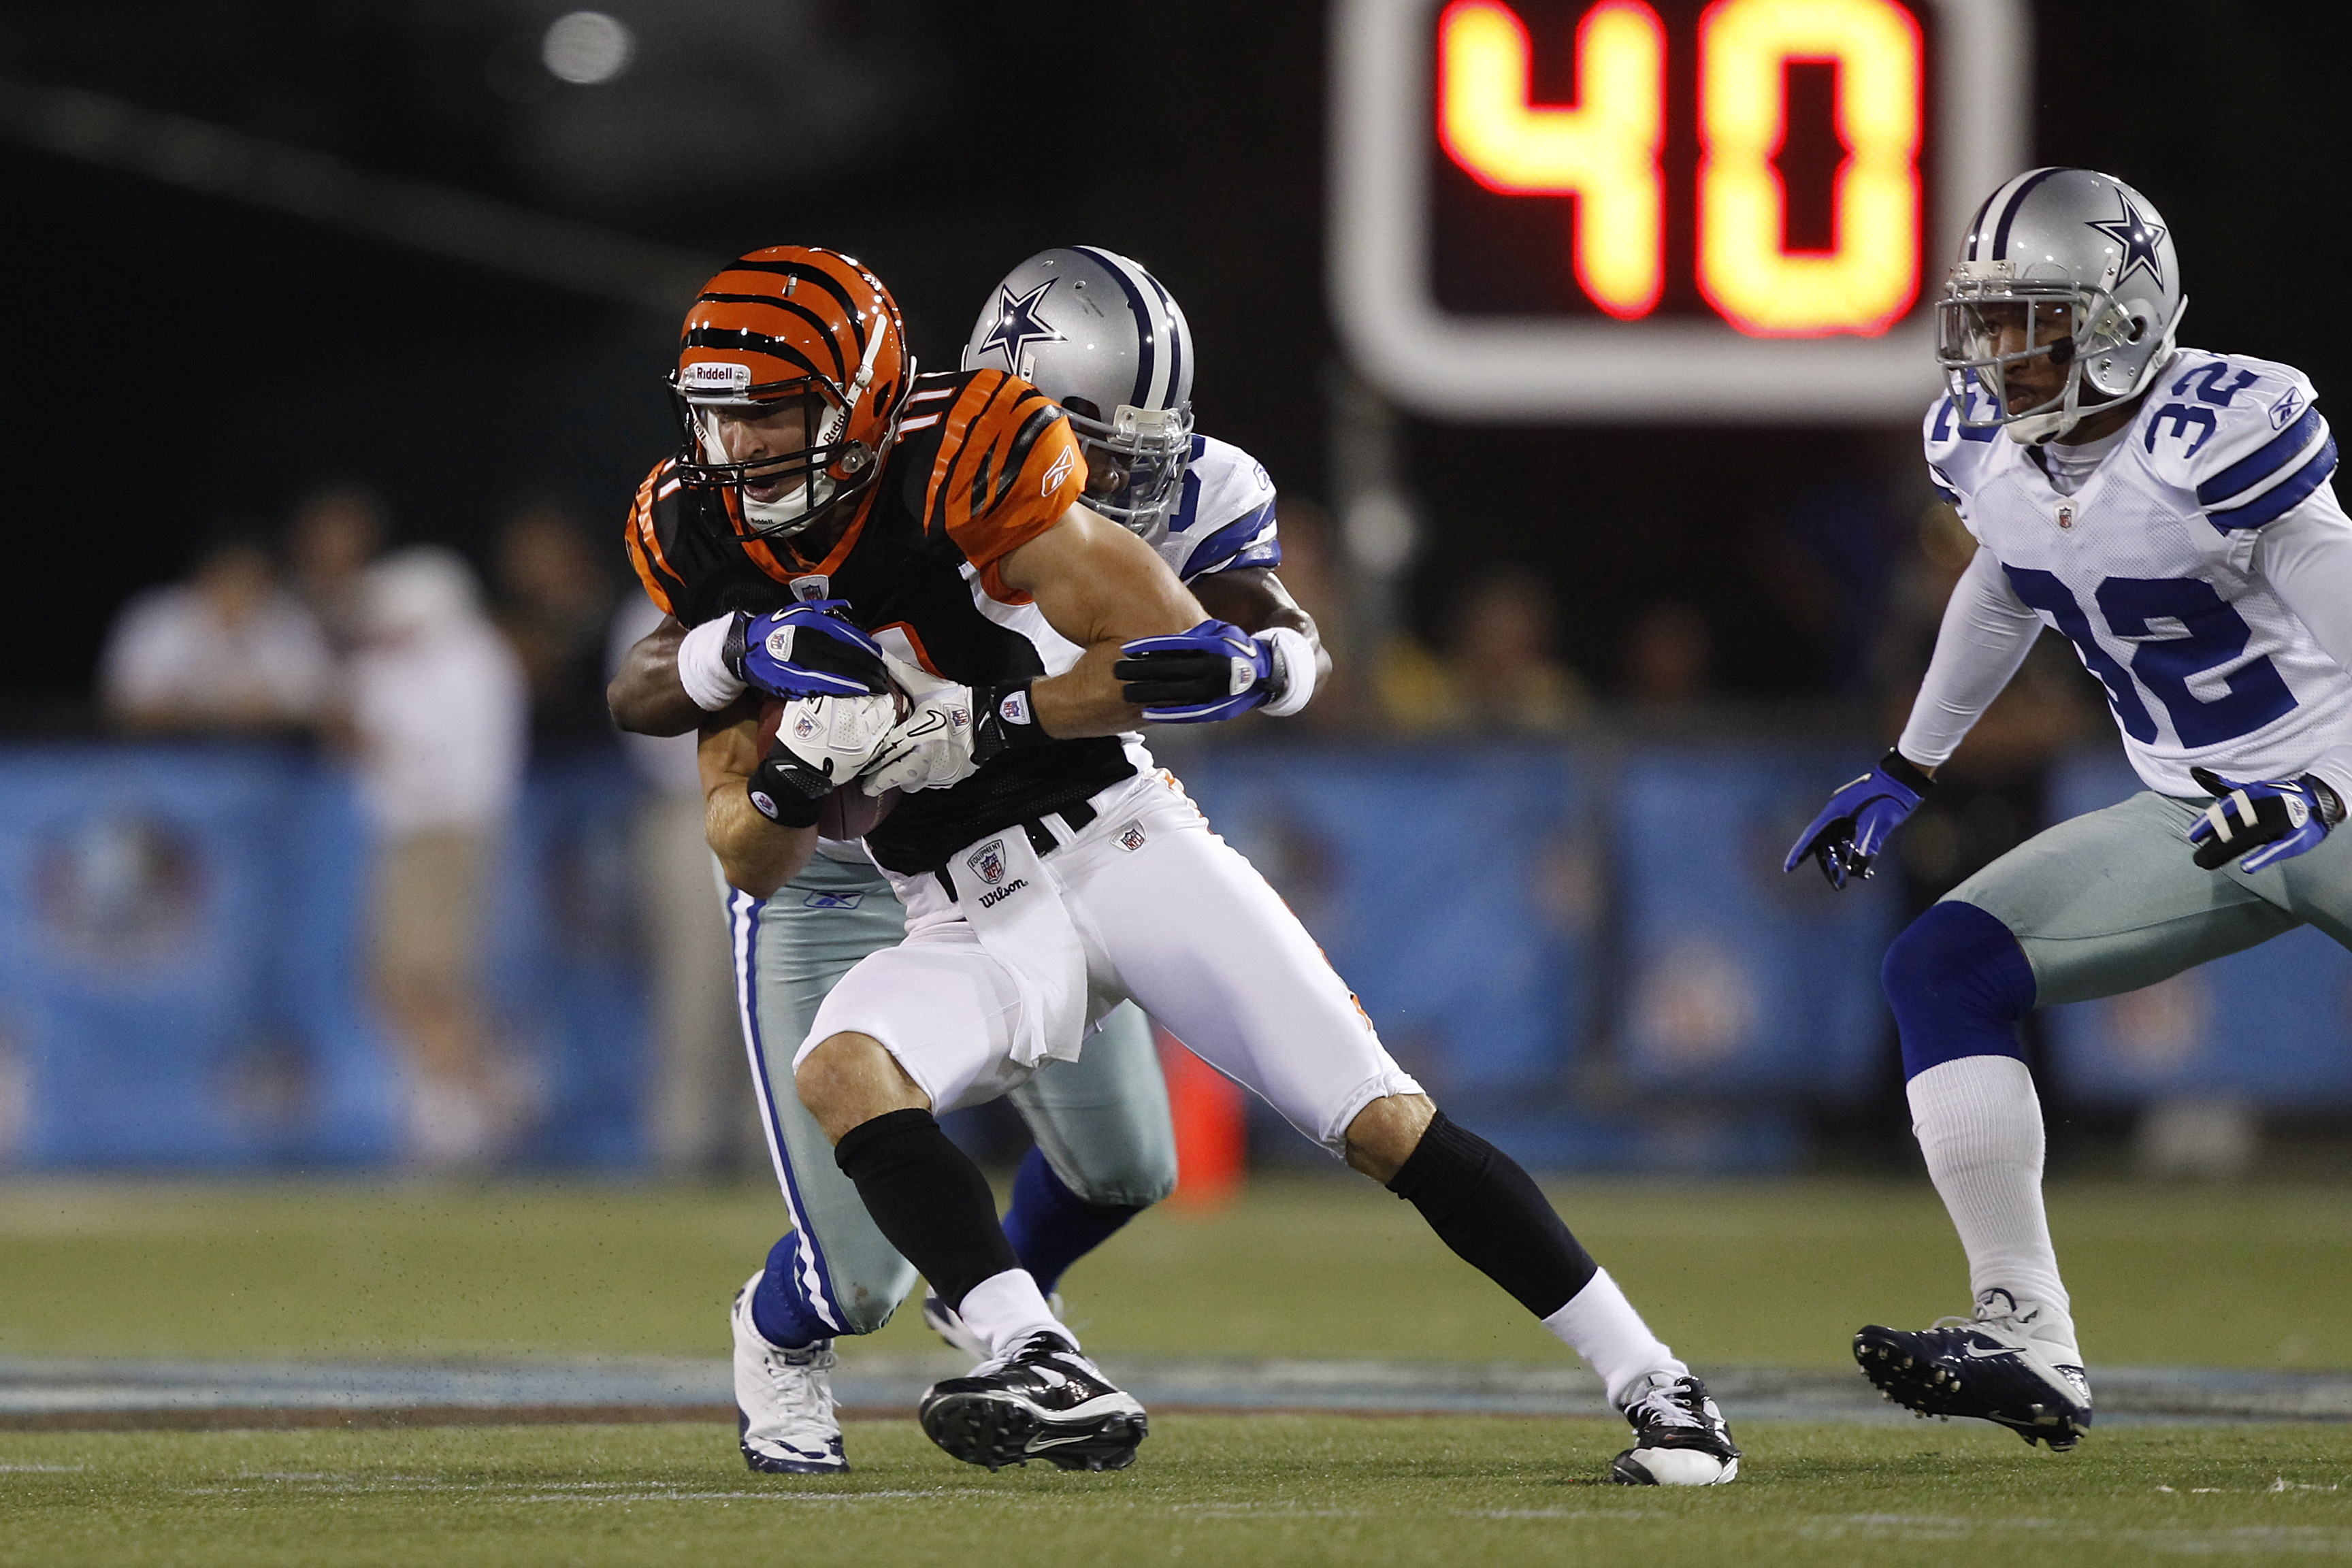 CANTON, OH - AUGUST 8: Jordan Shipley #11 of the Cincinnati Bengals tries to break a tackle after catching a pass against the Dallas Cowboys during the 2010 Pro Football Hall of Fame Game at the Pro Football Hall of Fame Field at Fawcett Stadium on August